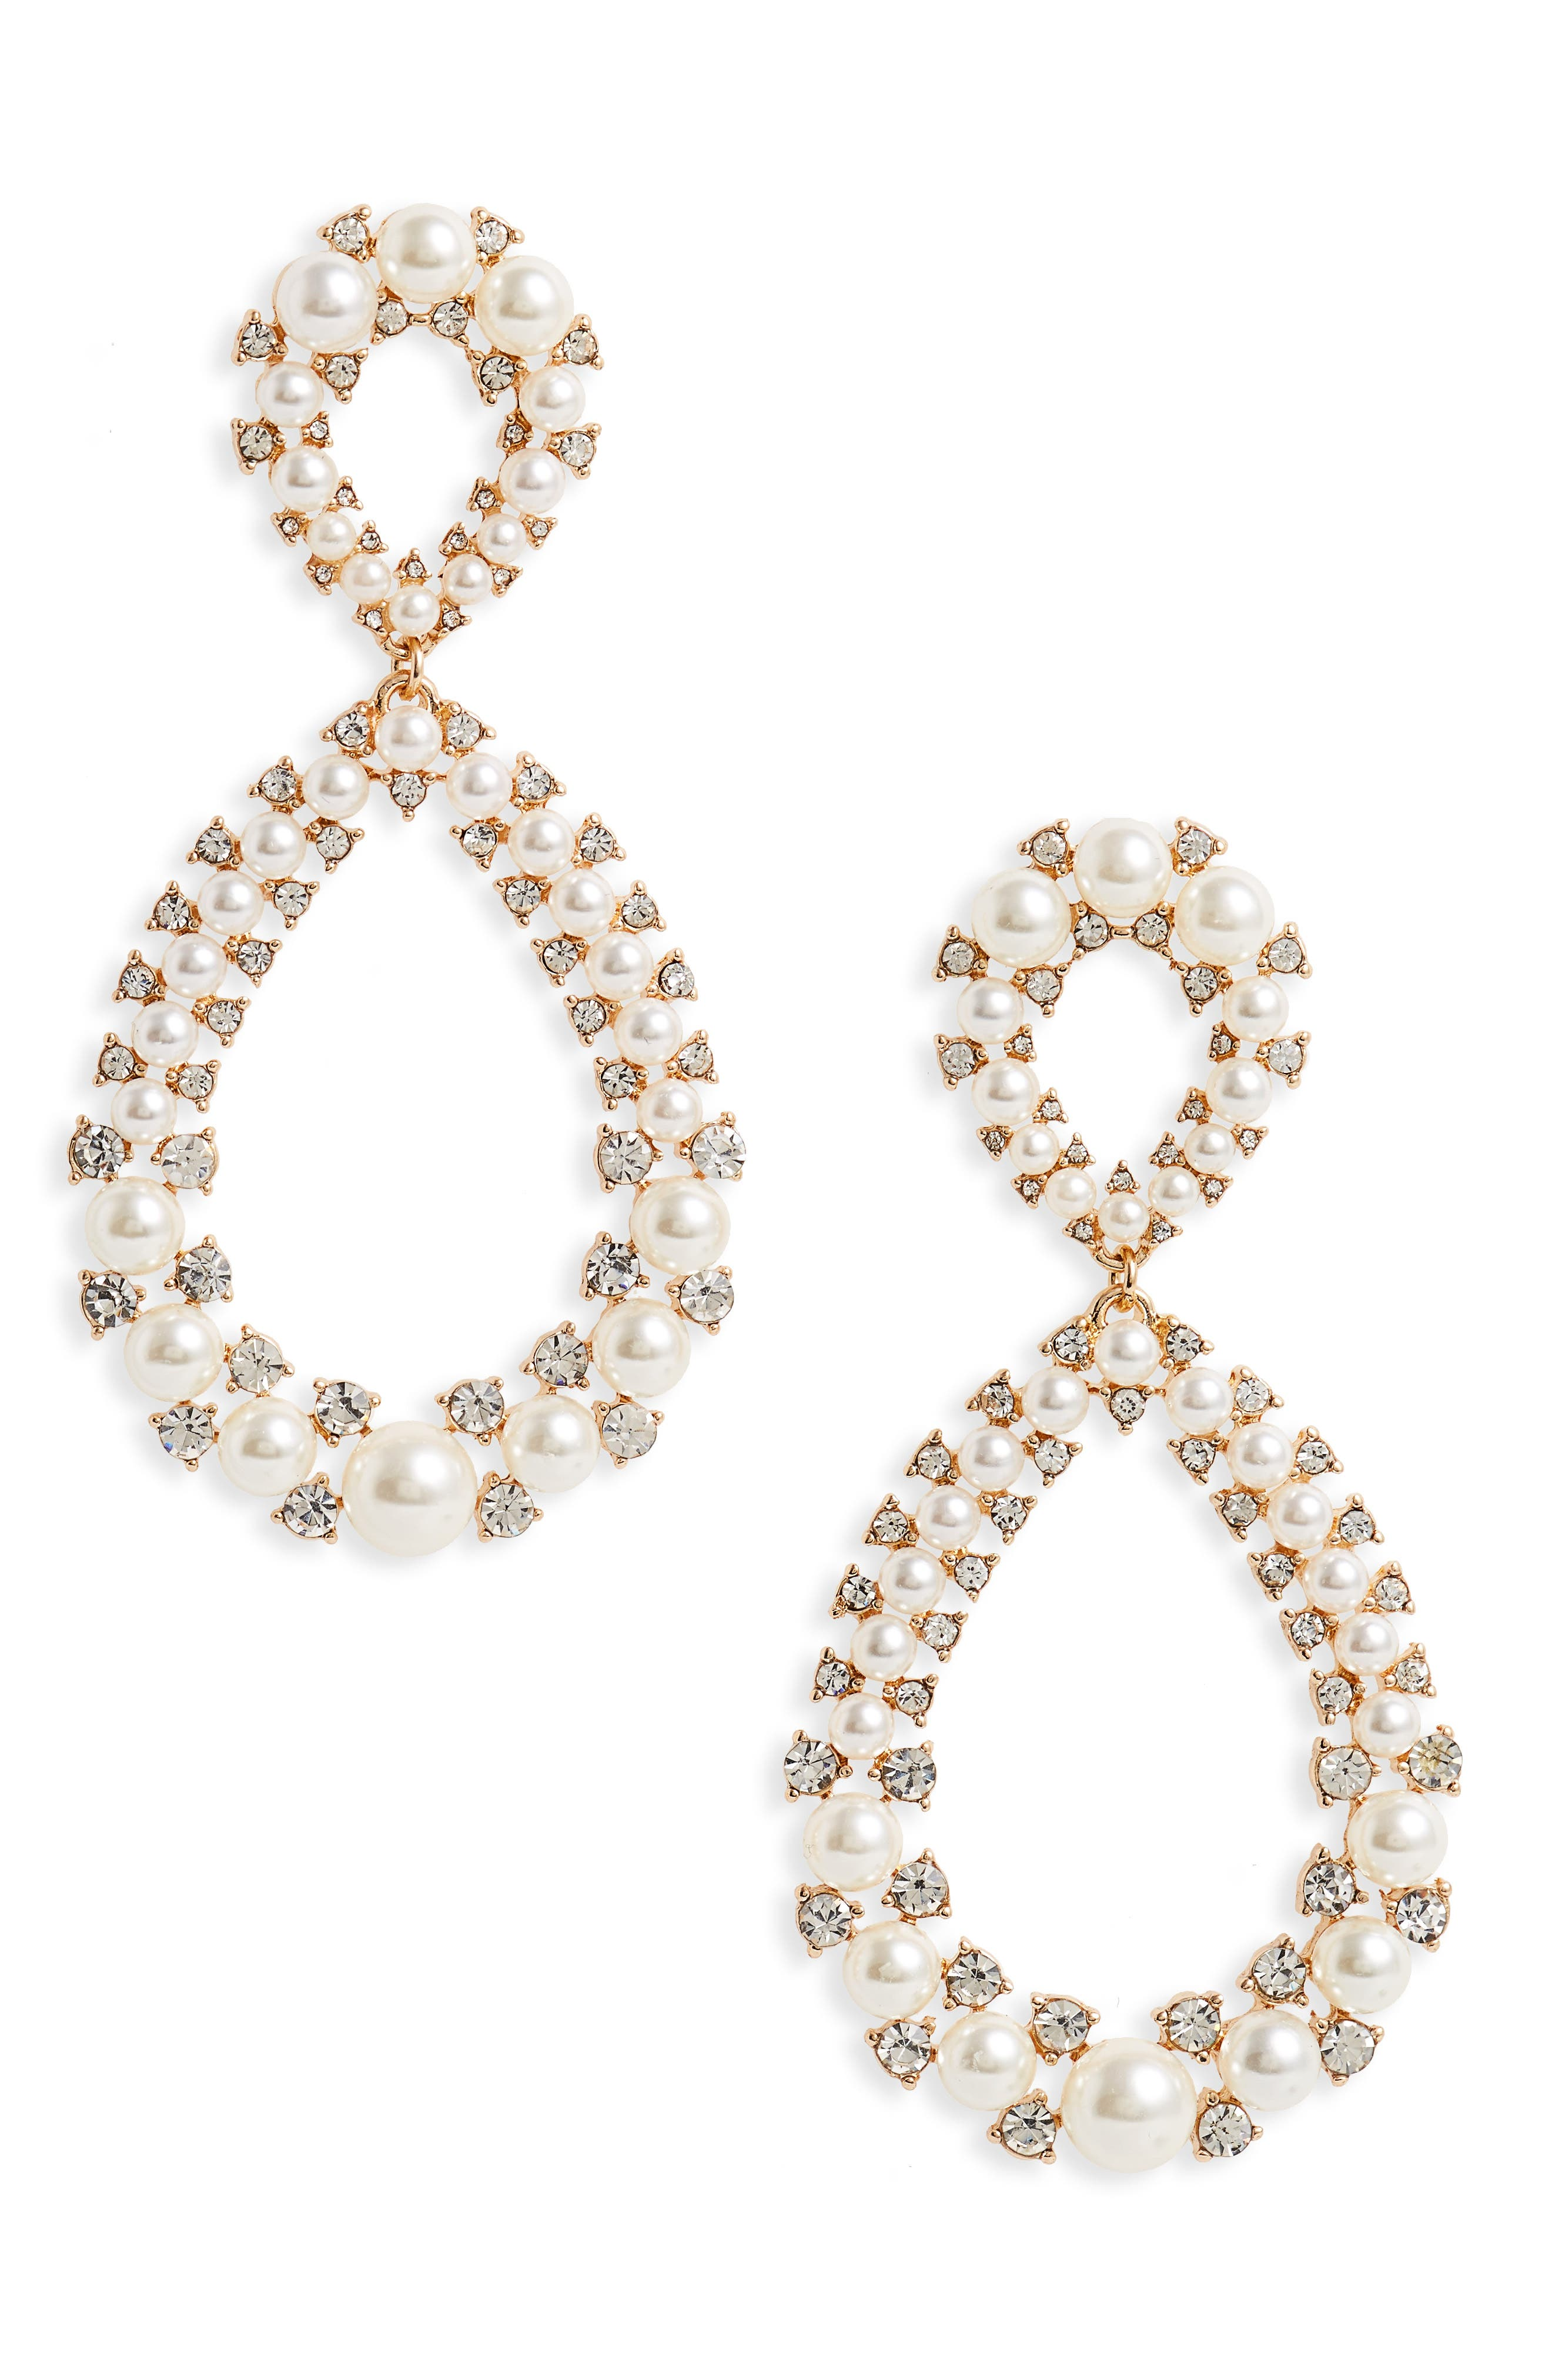 Imitation Pearl & Crystal Statement Earrings,                         Main,                         color, 100